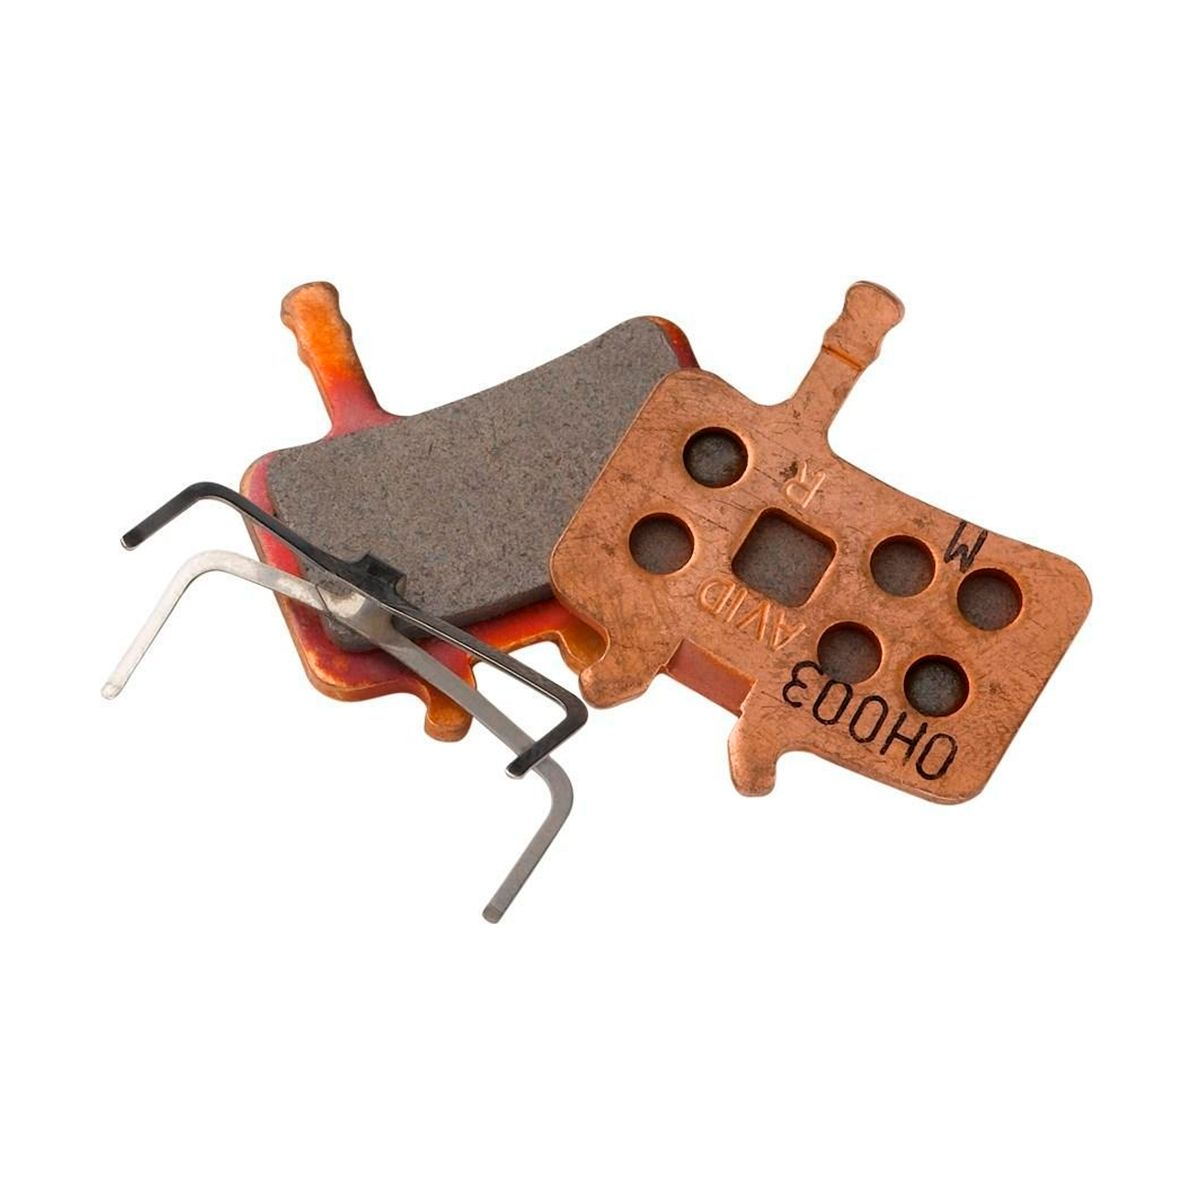 Juicy 7/5 disc brake pads